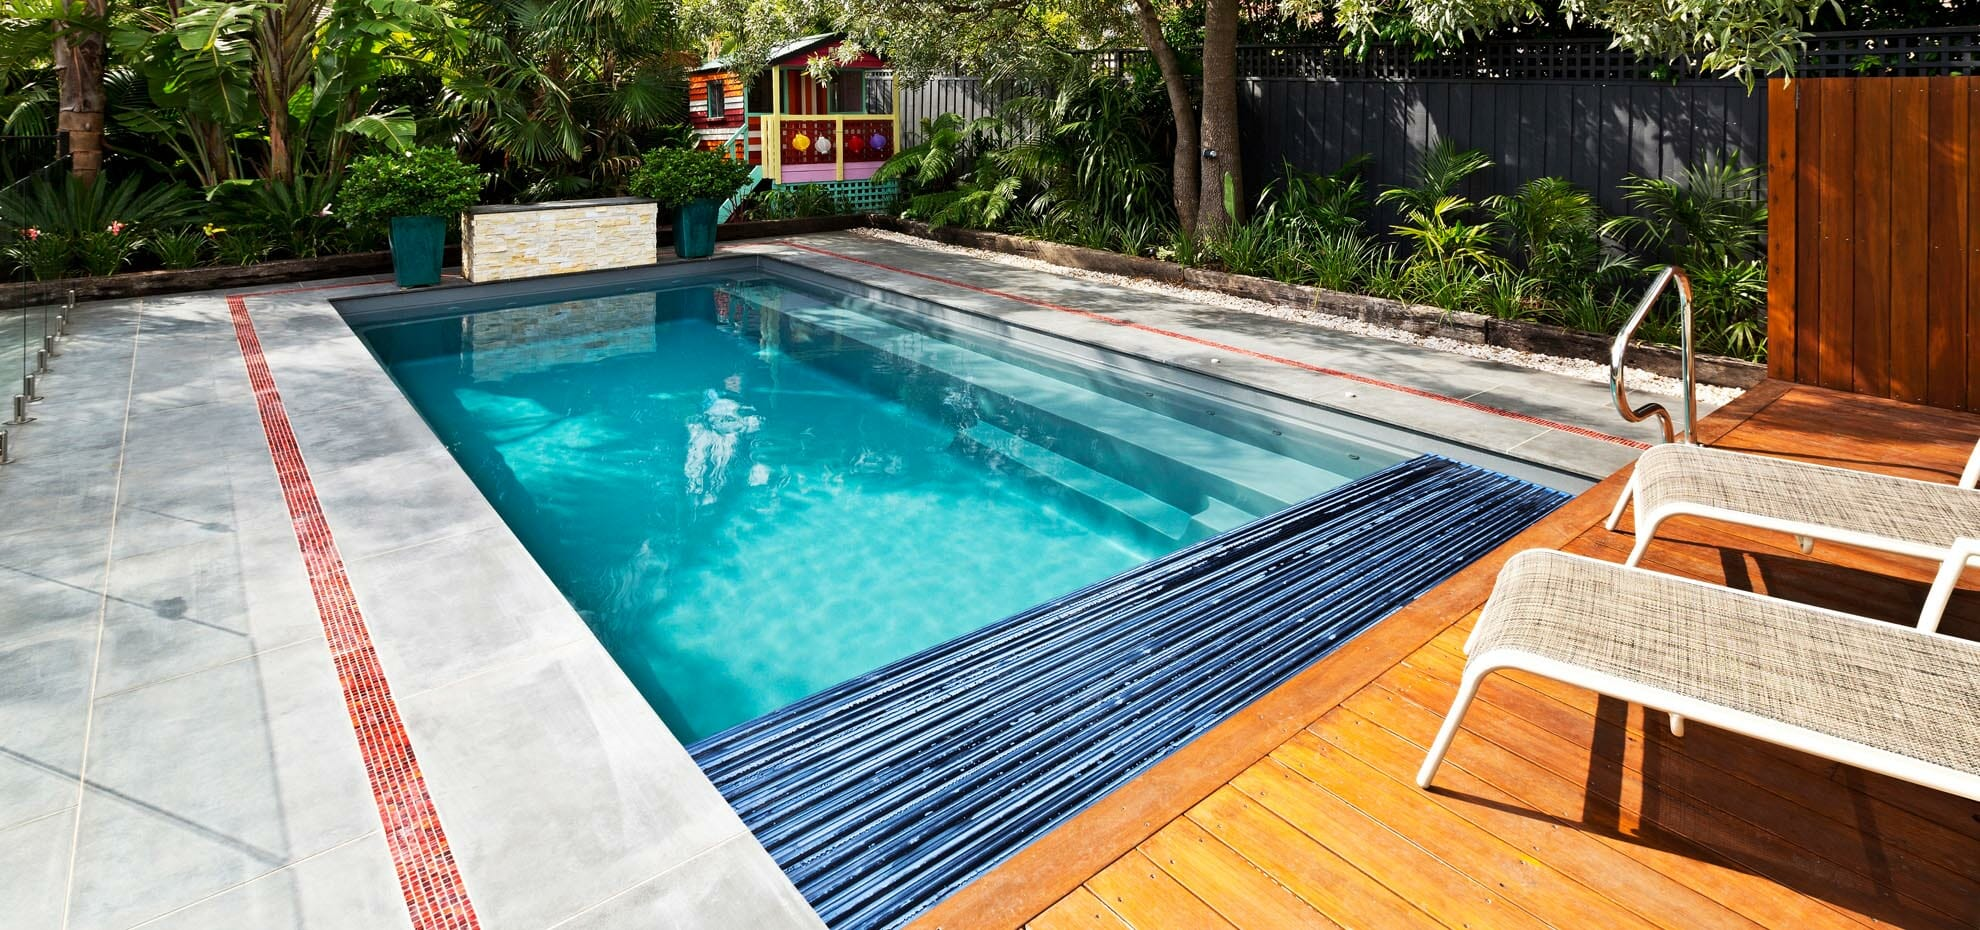 Things You Should Do When Re-Opening Your Pool This Year